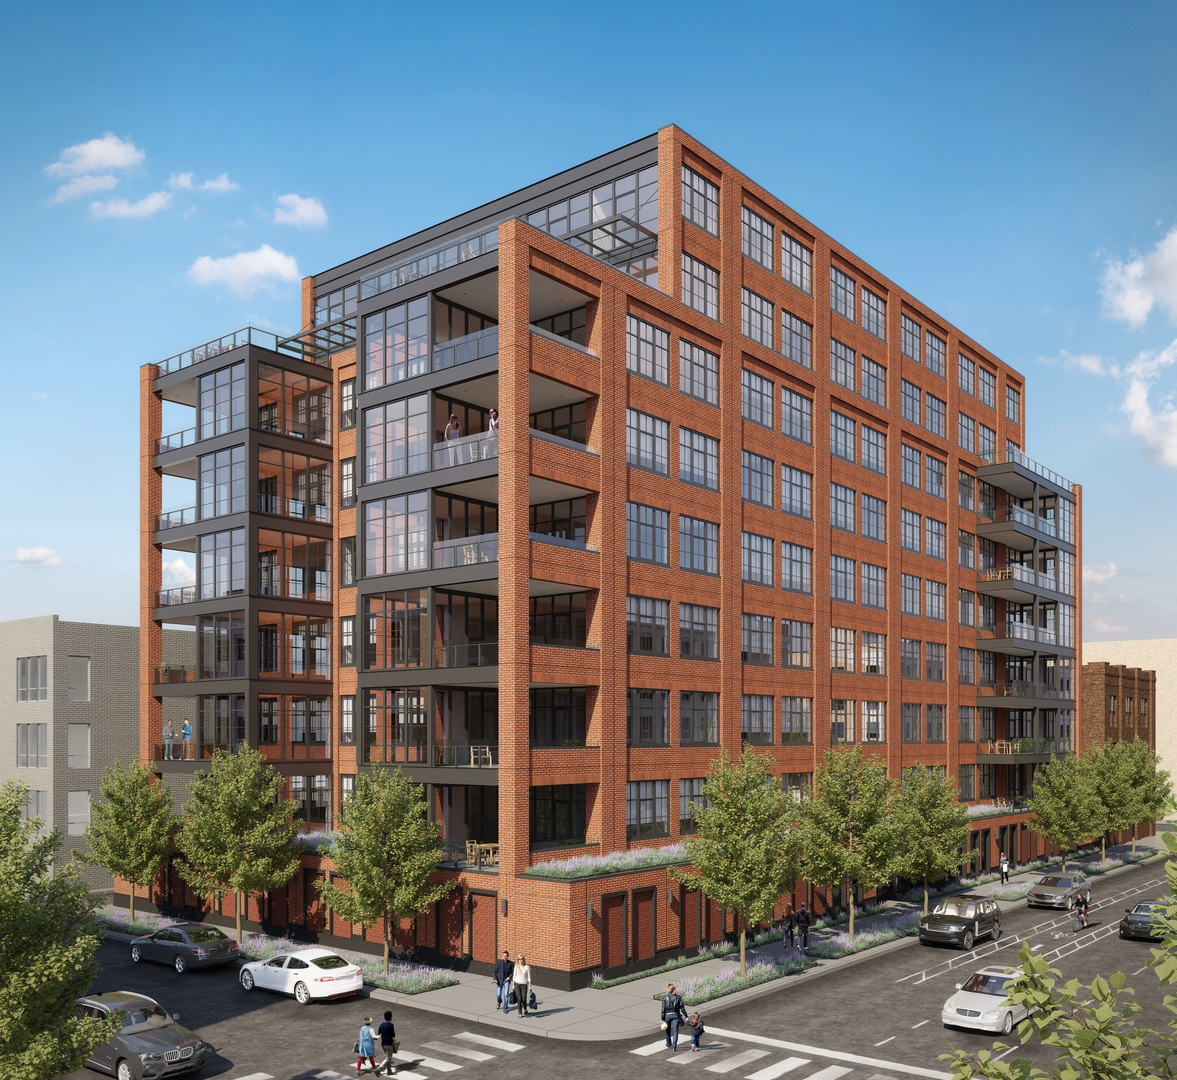 Кондоминиум для того Продажа на 1109 West Washington Boulevard #8D 1109 West Washington Boulevard #8D Chicago, Иллинойс,60607 Соединенные Штаты